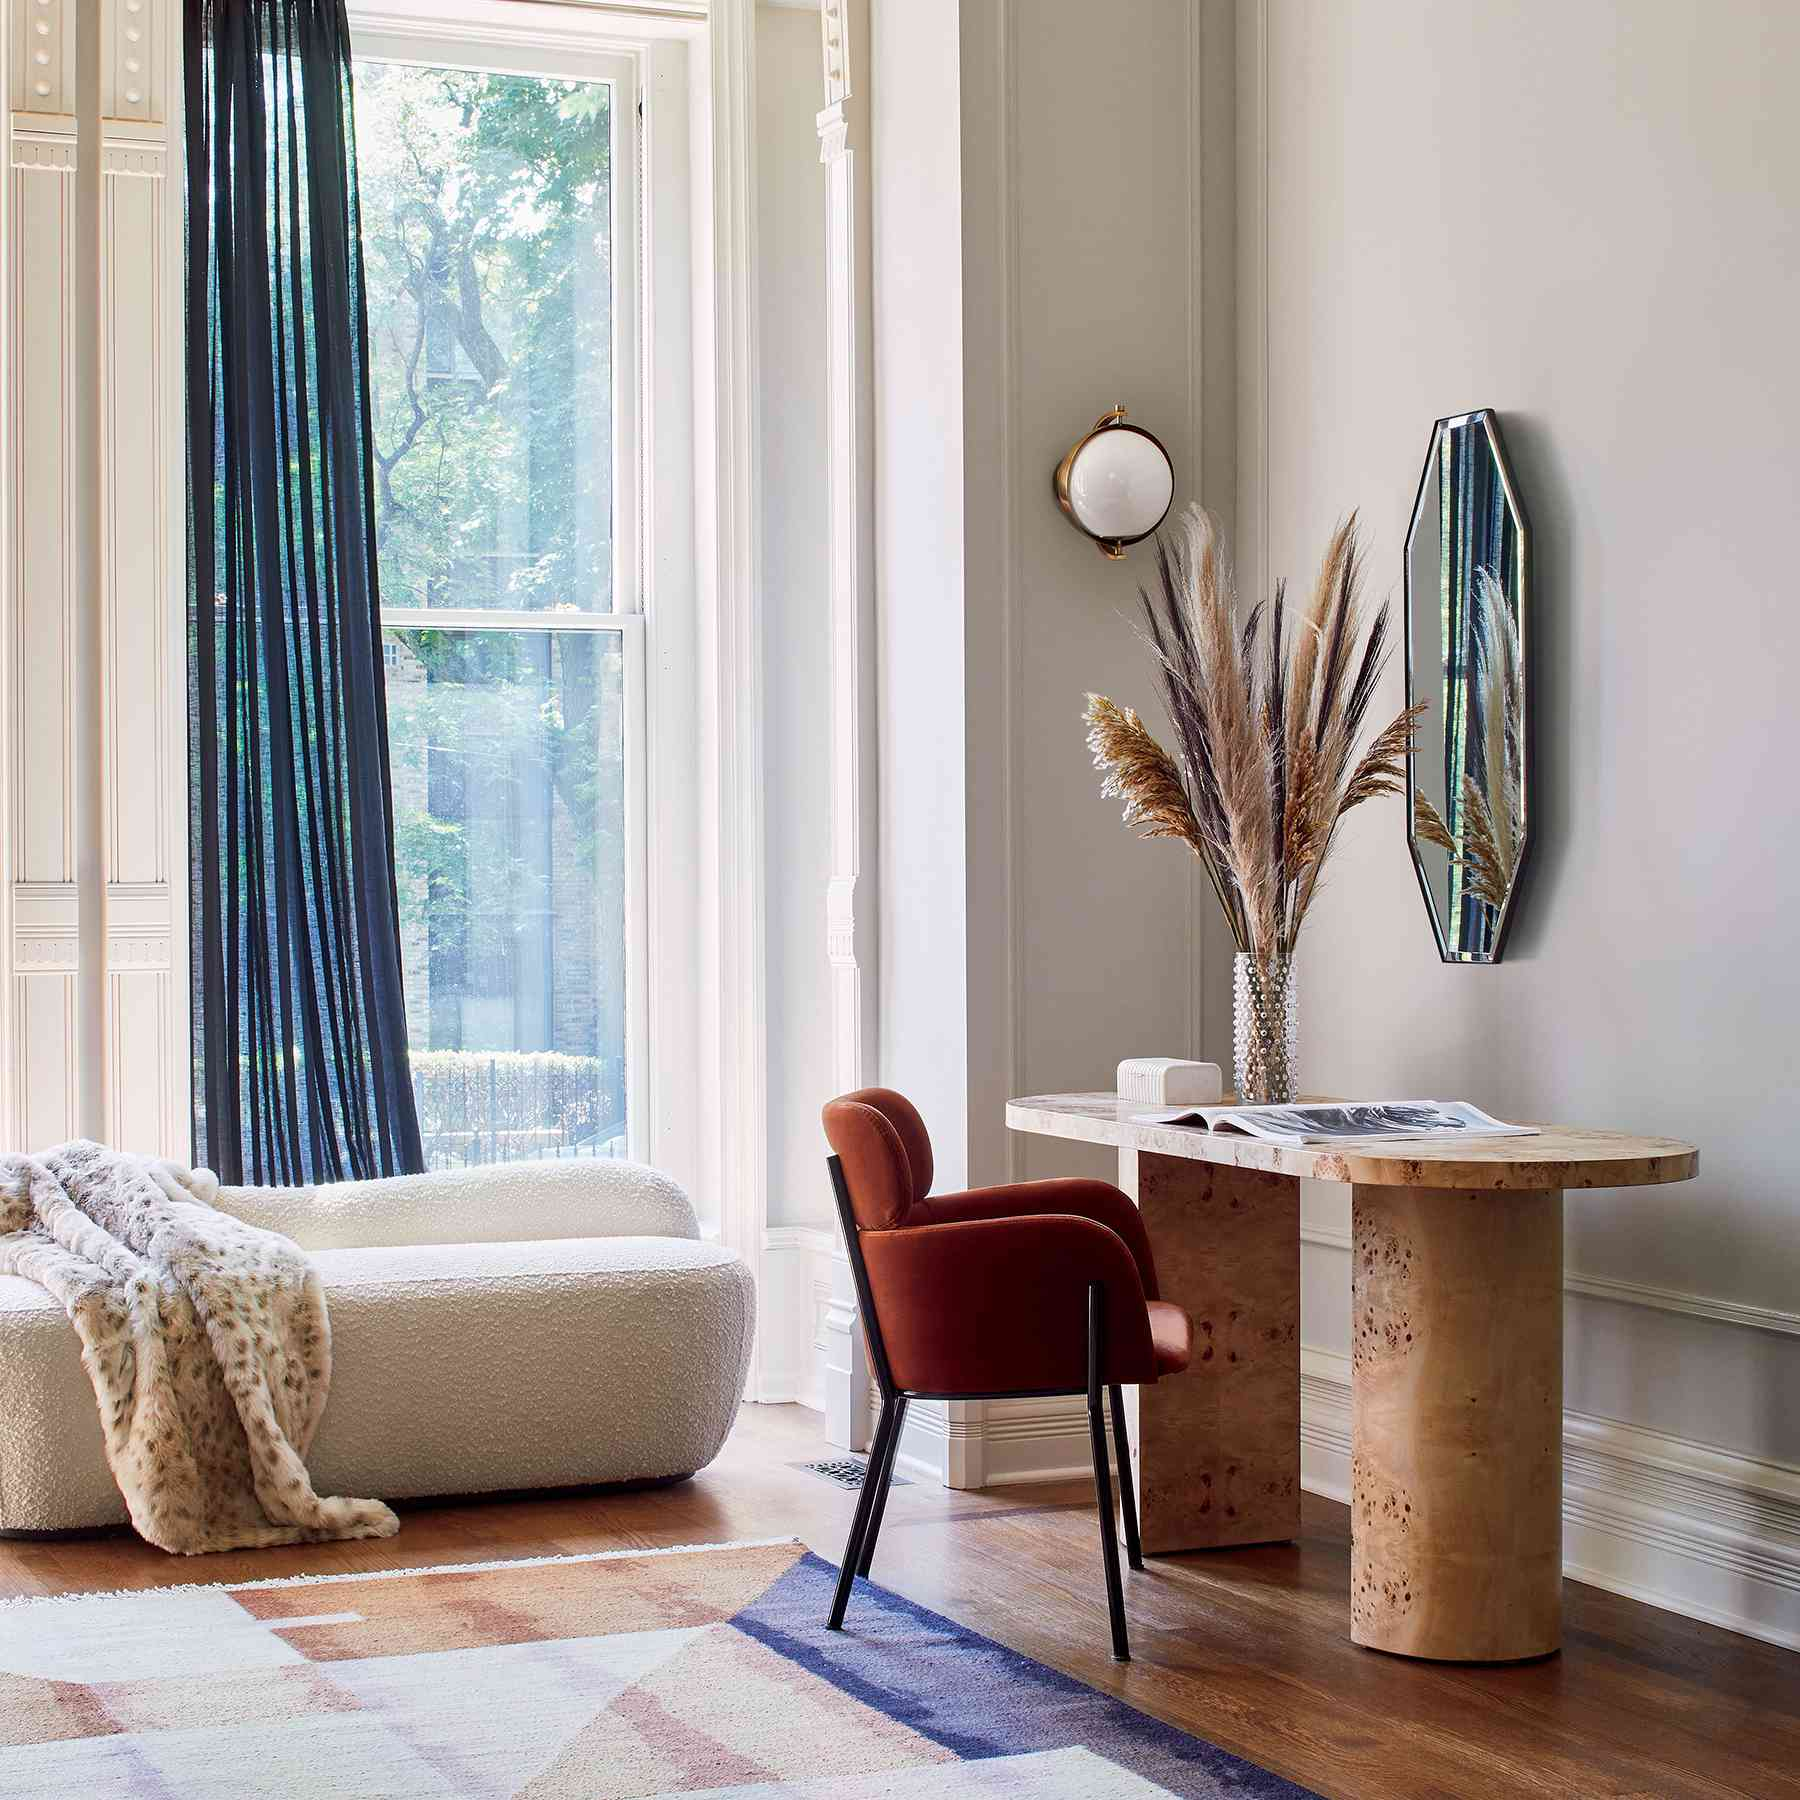 CB2 2021 Design Trends - desk with clay chair, white couch